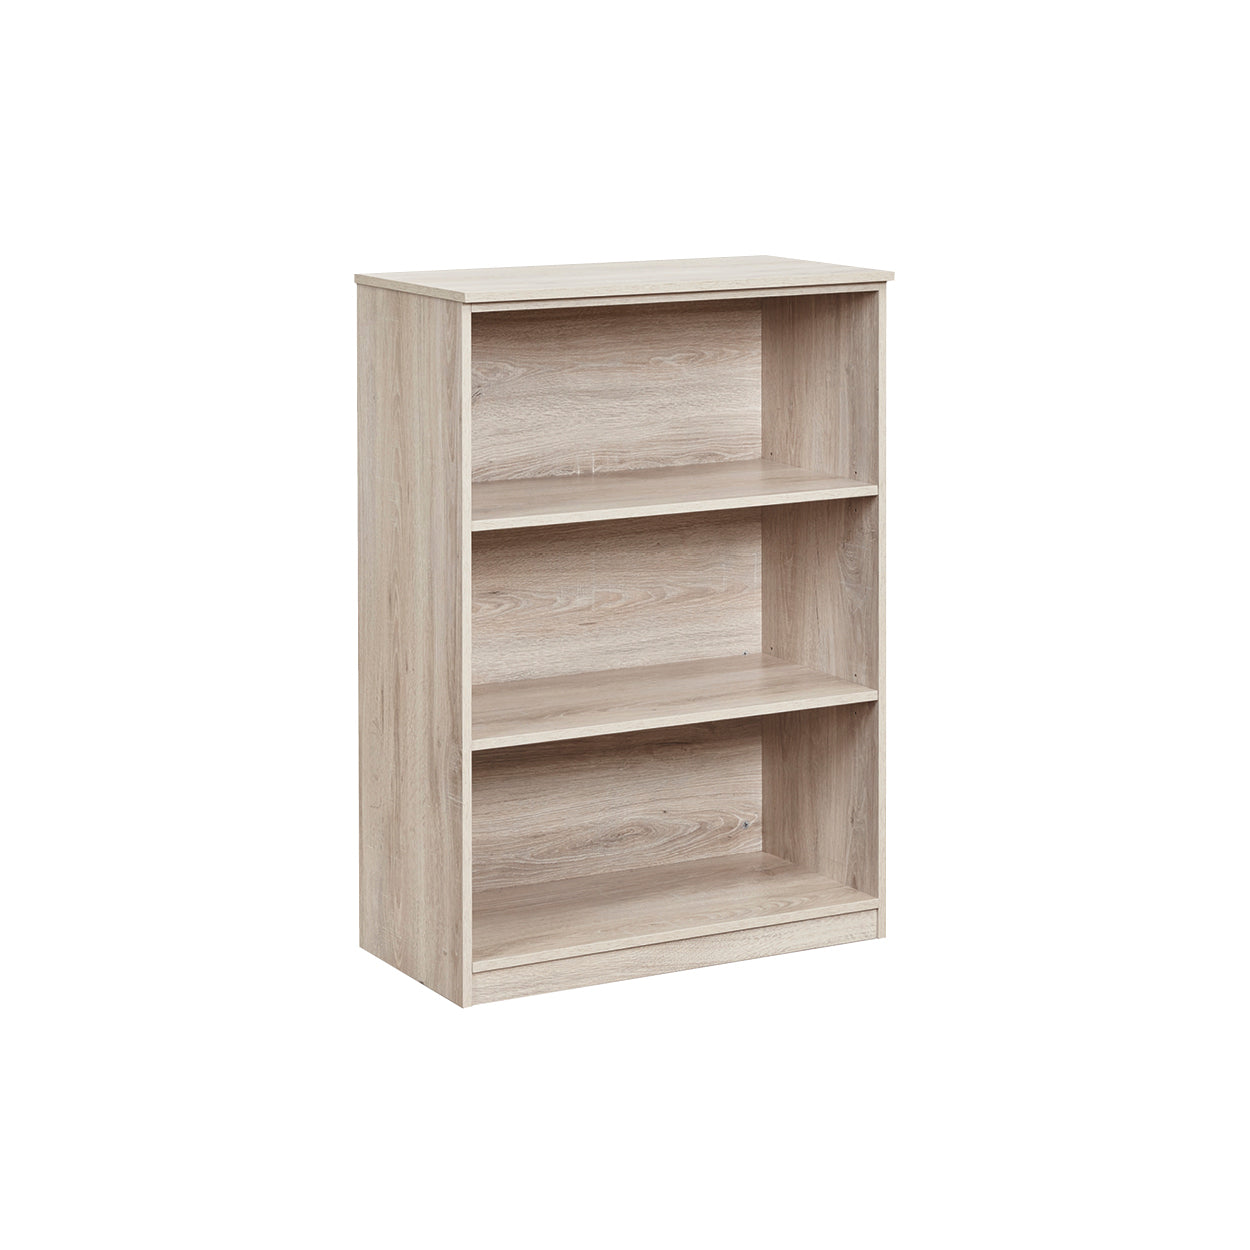 Cobalt 16 open bookcase